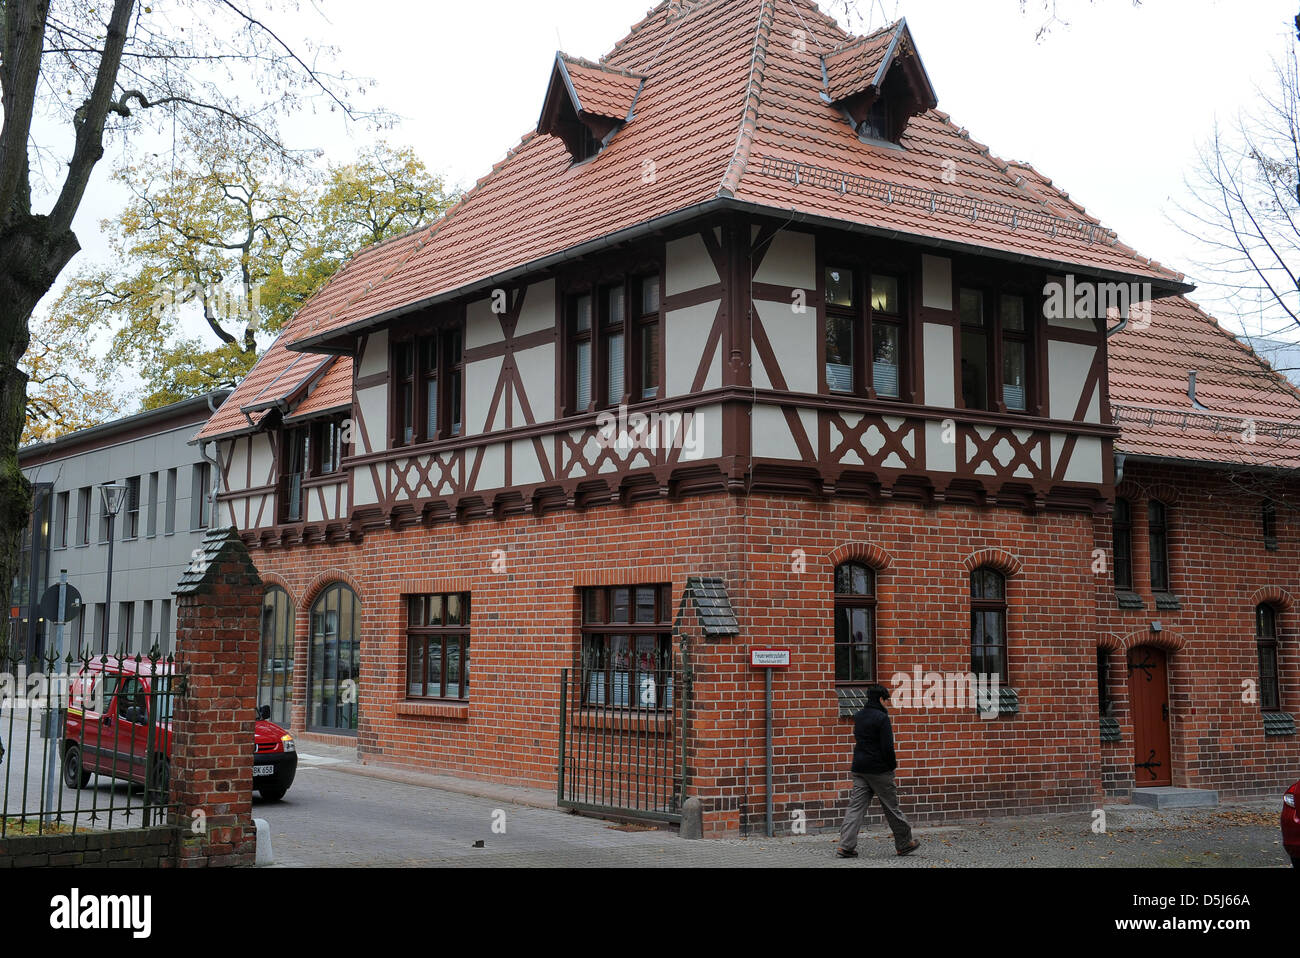 A View Of The Restored Horse Stable House In Rathenow, Germany, 8 November  2012